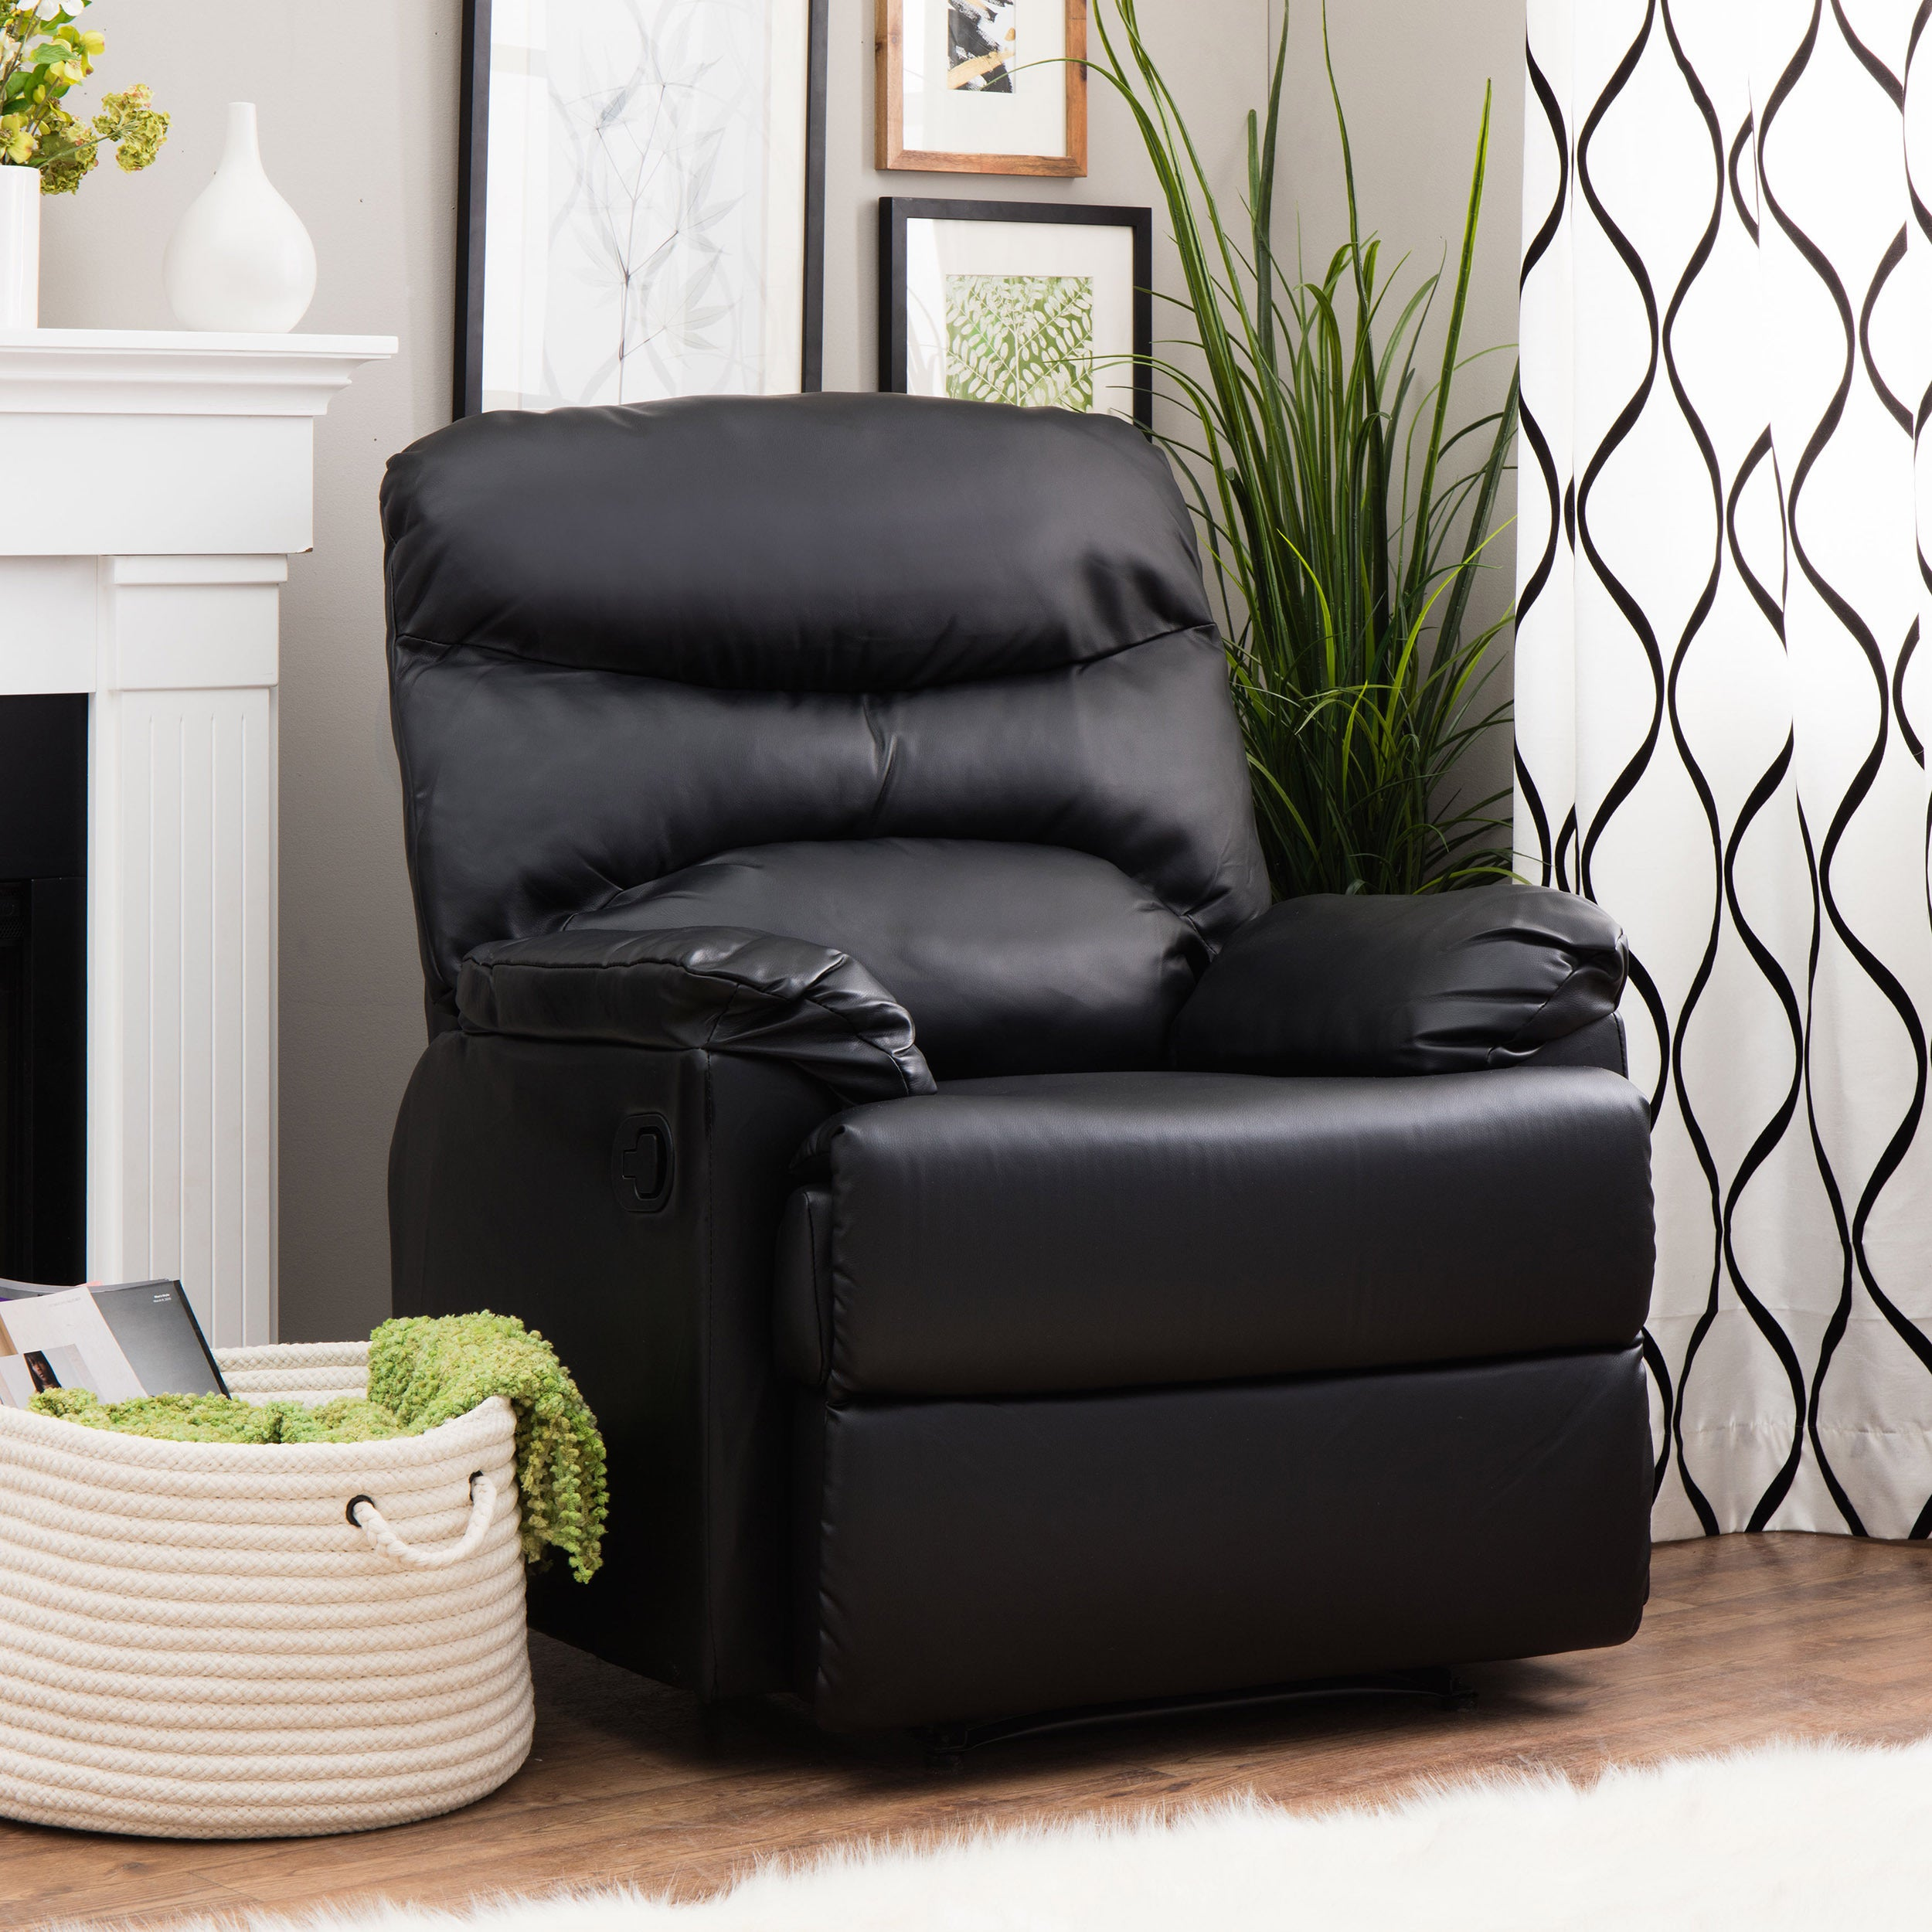 Incredible Tucker Black Bonded Leather Recliner Theyellowbook Wood Chair Design Ideas Theyellowbookinfo